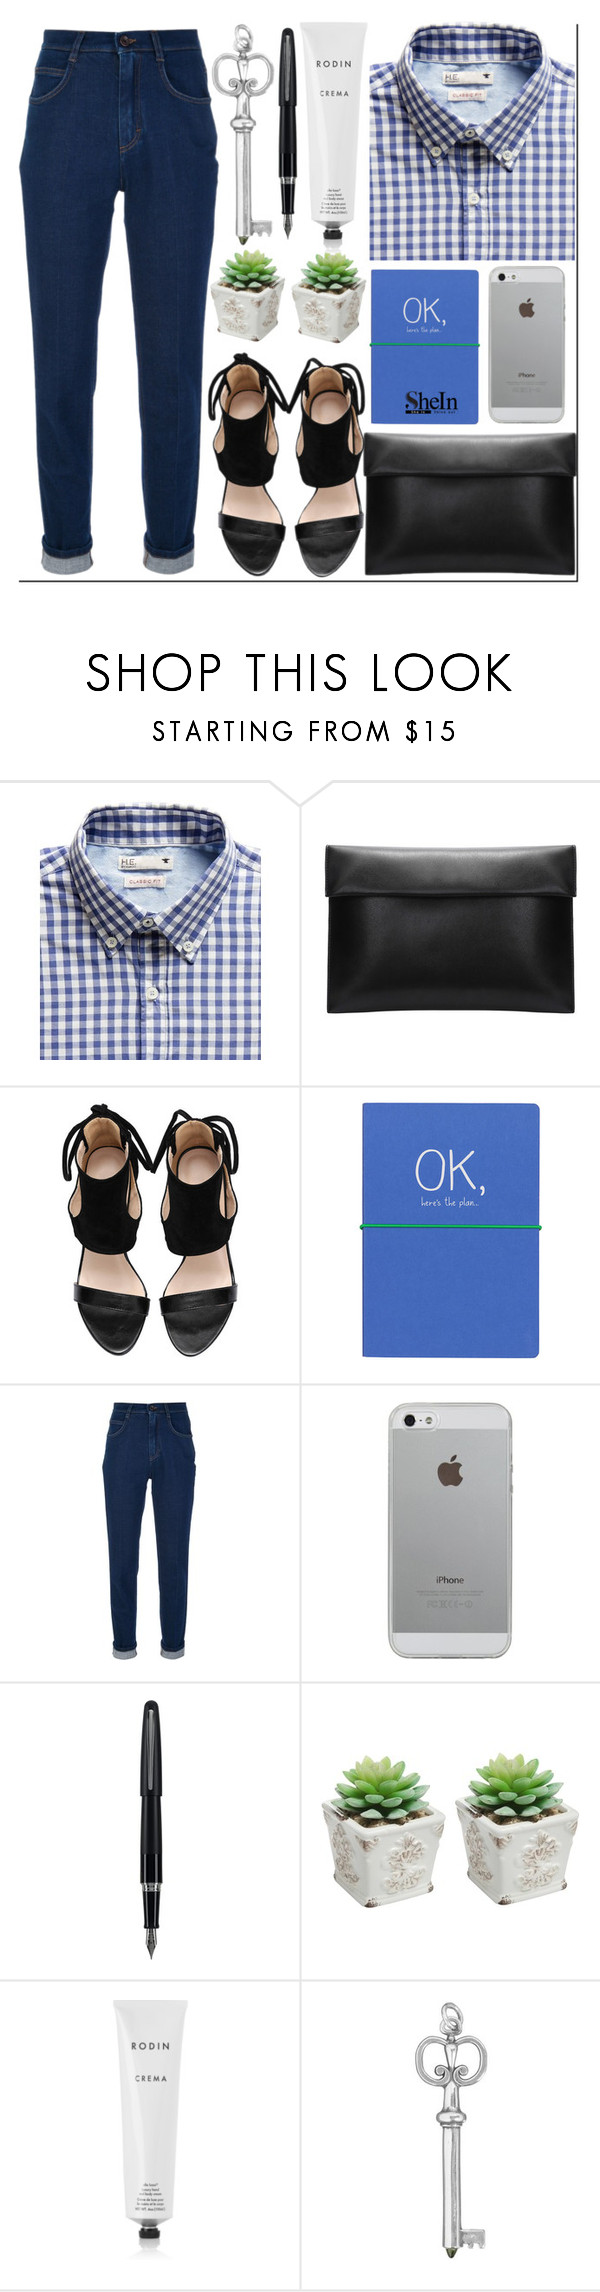 """""""OOTD"""" by nastya-d ❤ liked on Polyvore featuring MANGO, Wild & Wolf, Dolce&Gabbana, Luvvitt, Fountain, Rodin, women's clothing, women, female and woman"""